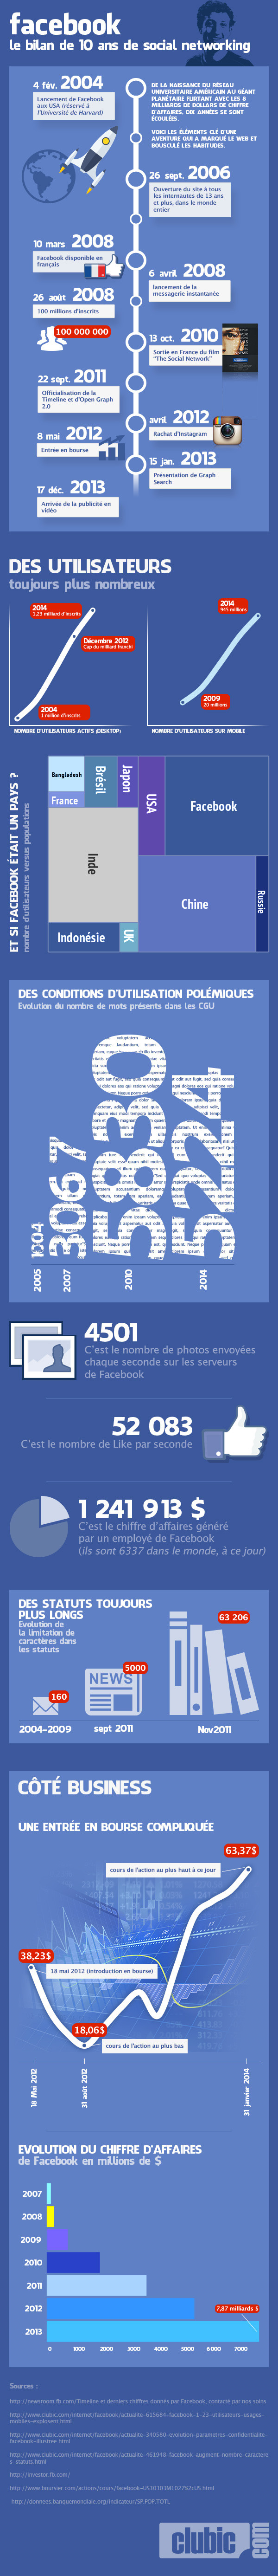 07126016-photo-infographie-facebook-10-ans.jpg